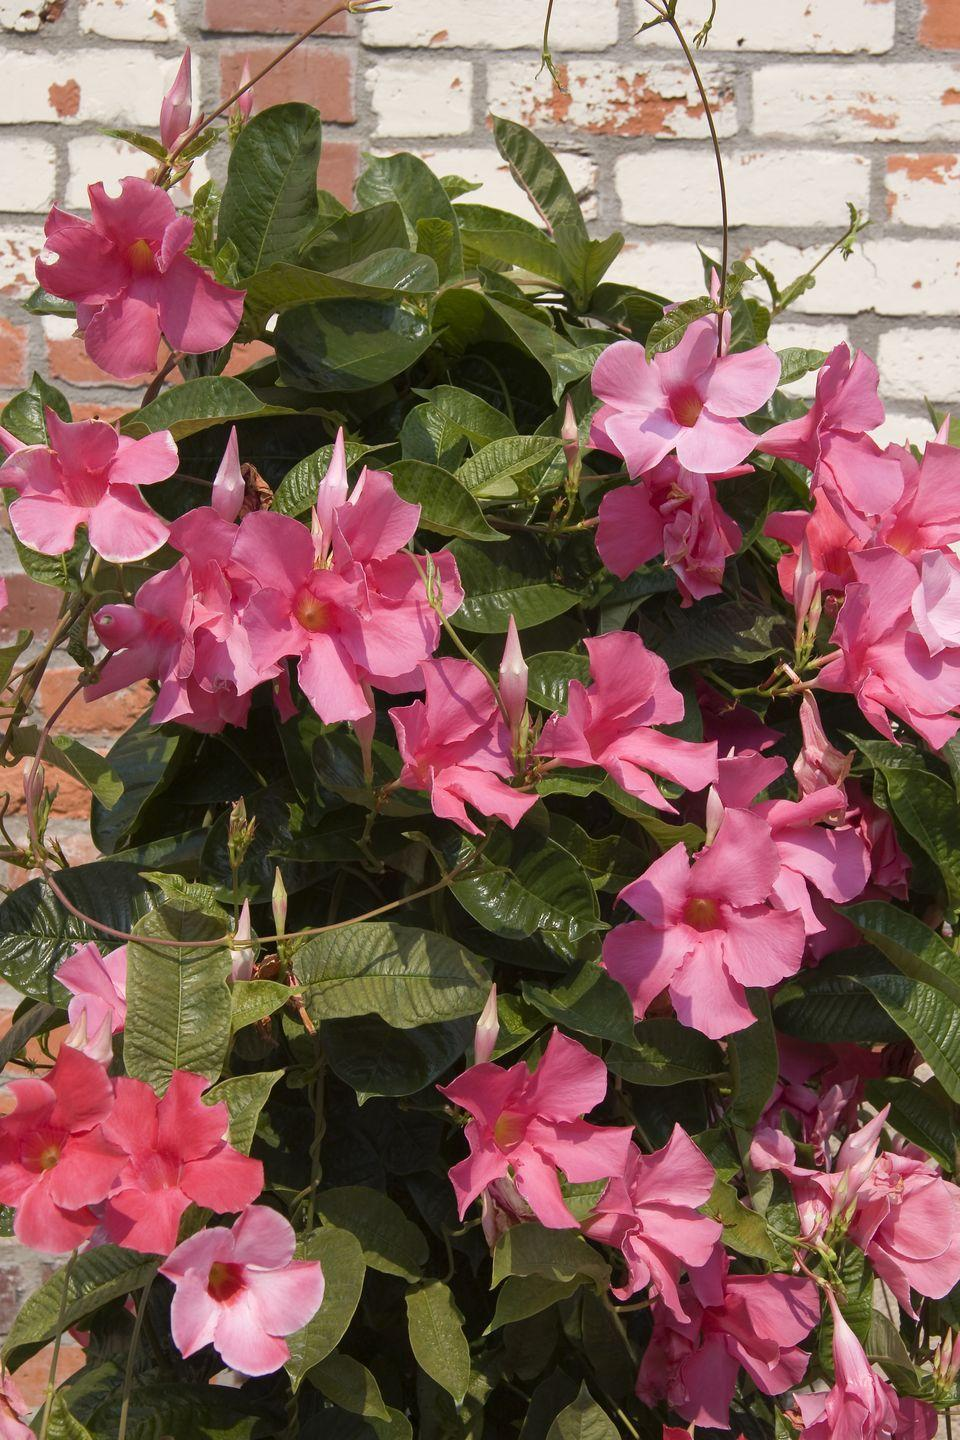 """<p>Pink, red or white blossoms cover this tropical vine and last all summer long. It likes full sun but needs a little afternoon shade in hot climates. Mandevilla is considered an annual in temperate climates, but is an evergreen in warmer regions of the country. You can try to overwinter it indoors, but it will shed leaves daily, so be prepared for lots of cleanups. </p><p><a class=""""link rapid-noclick-resp"""" href=""""https://www.amazon.com/Costa-Farms-Live-Mandevilla-Outdoor/dp/B07QFG29R4/ref=sr_1_2?dchild=1&keywords=mandevilla+plants&qid=1621019732&s=lawn-garden&sr=1-2&tag=syn-yahoo-20&ascsubtag=%5Bartid%7C10050.g.1456%5Bsrc%7Cyahoo-us"""" rel=""""nofollow noopener"""" target=""""_blank"""" data-ylk=""""slk:SHOP MANDEVILLA PLANTS"""">SHOP MANDEVILLA PLANTS</a> </p>"""